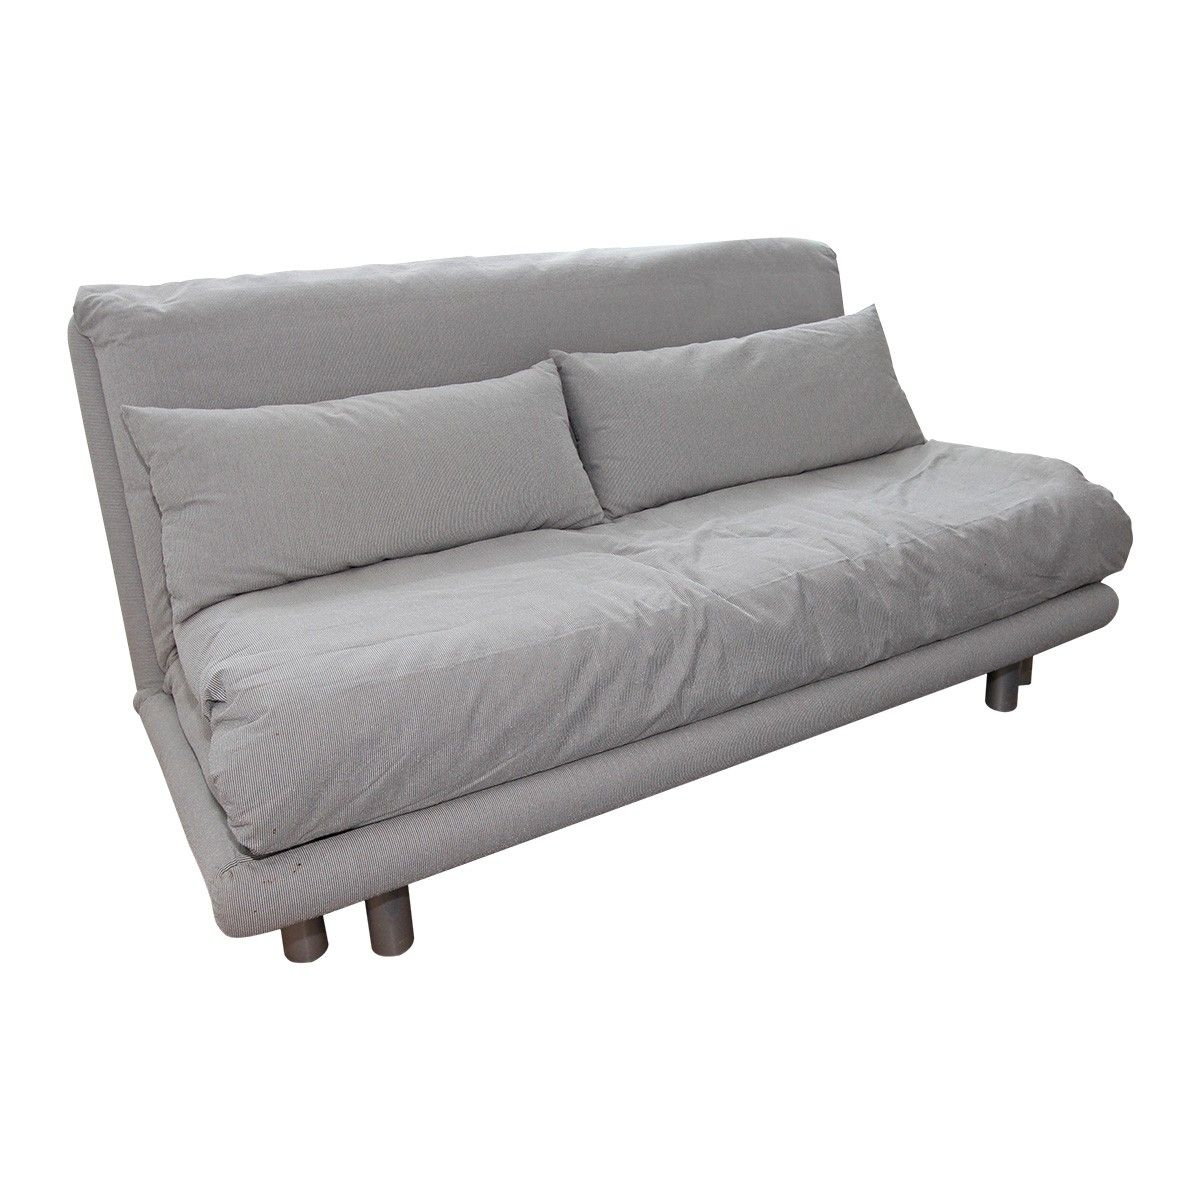 Ligne Roset Multy Sofa Bed Angled View Sofa Sofa Cama Cama